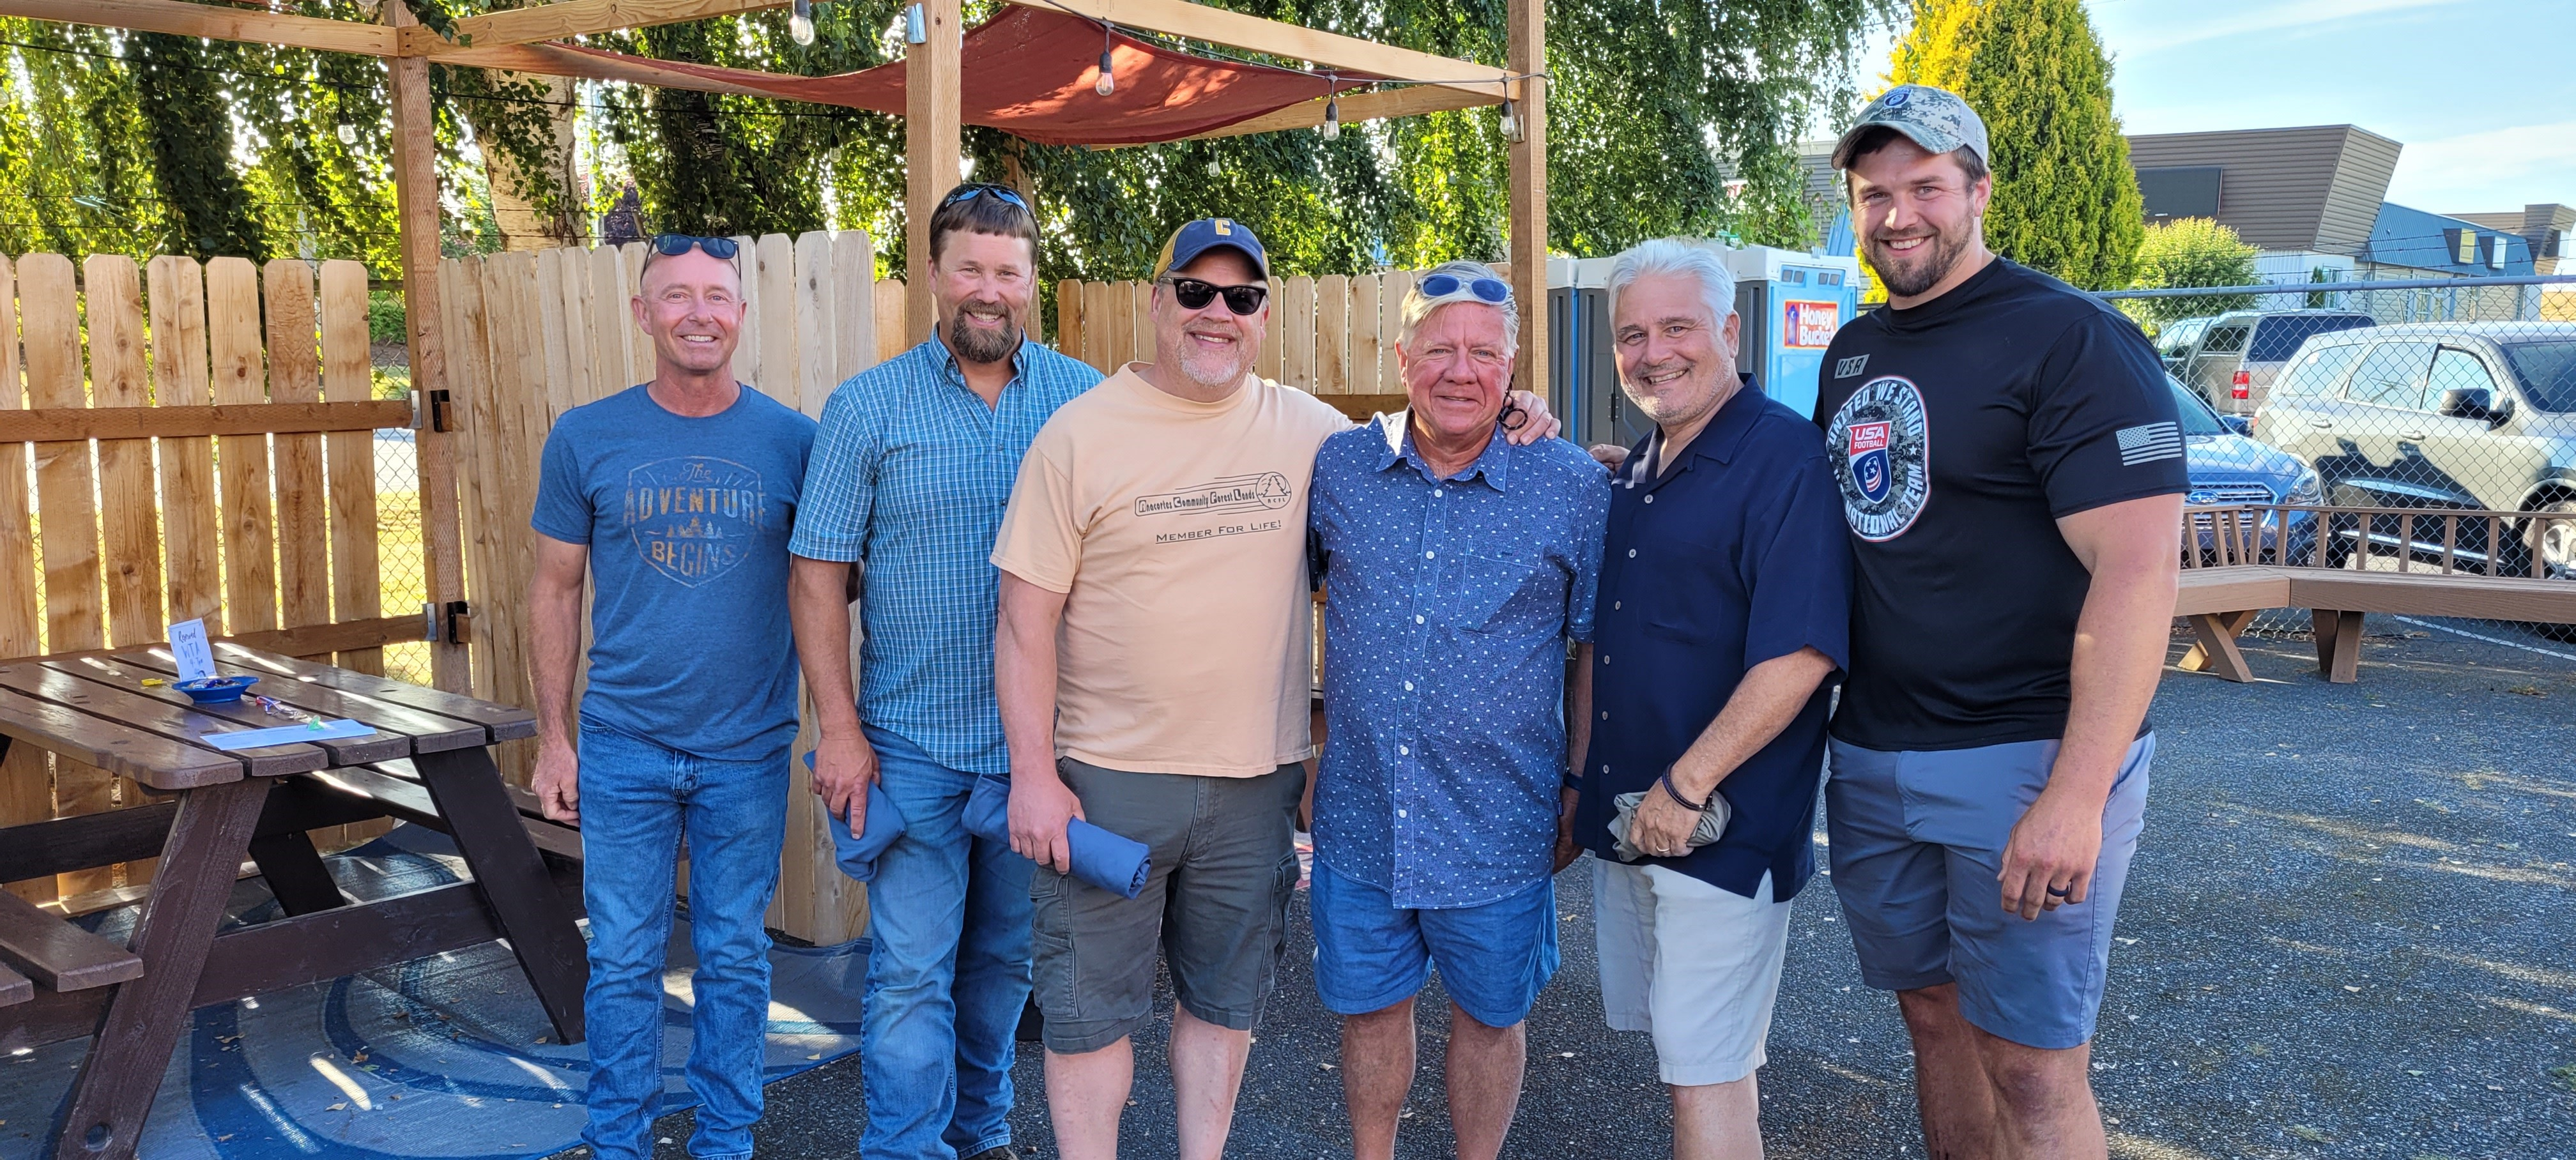 Six men standing together outside, in front of a wooden picnic table.